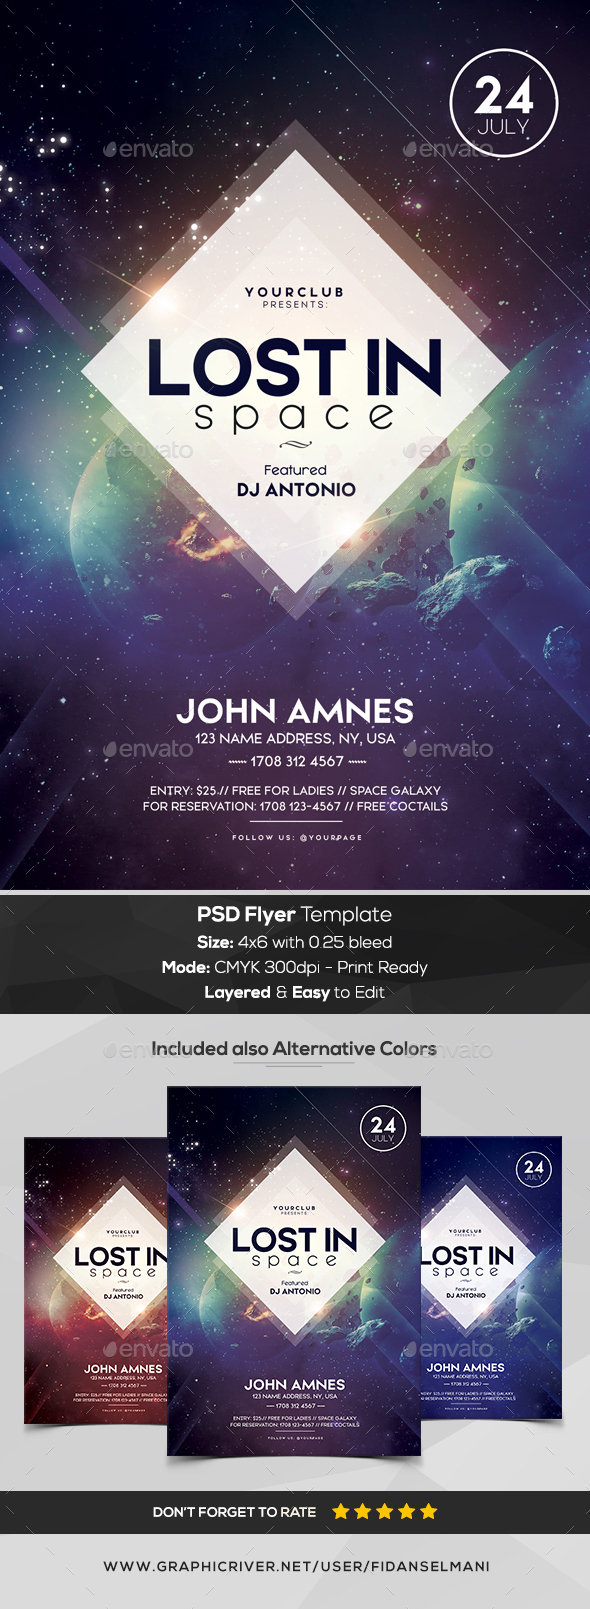 Lost in Space - PSD Flyer Template - Events Flyers